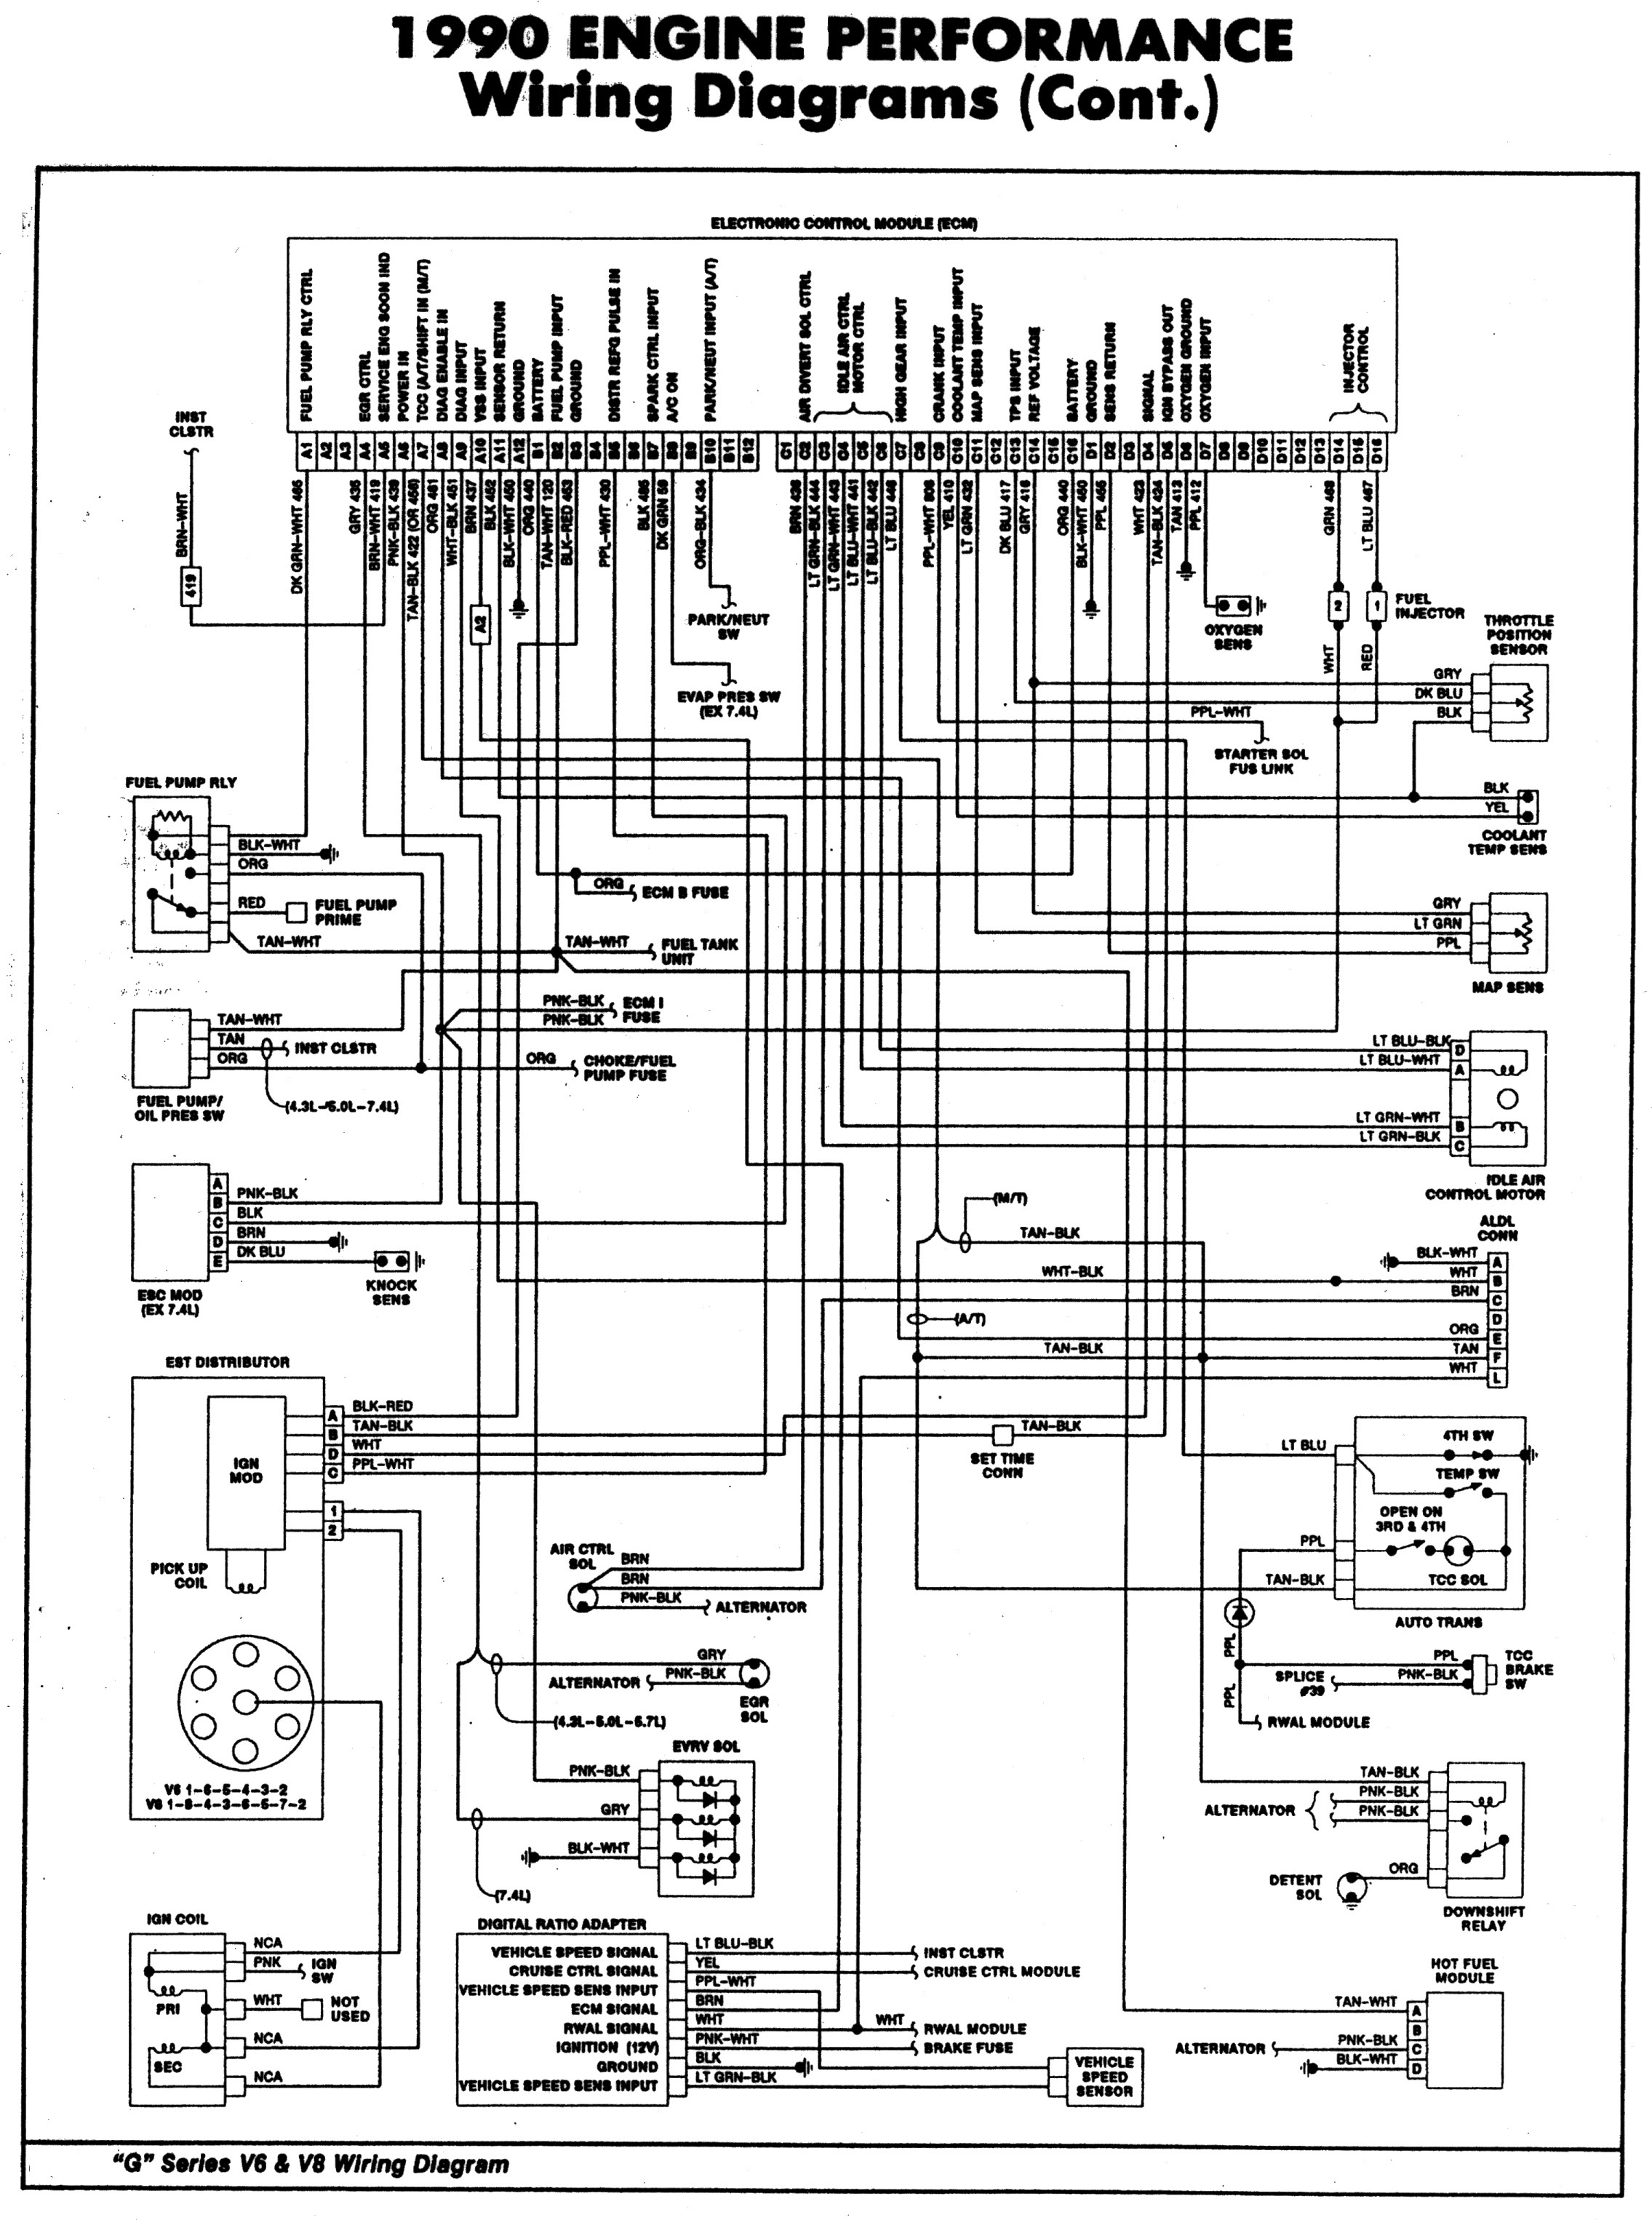 Gm A Wiring Diagrams - Wiring Diagrams Load G Wiring Diagrams on